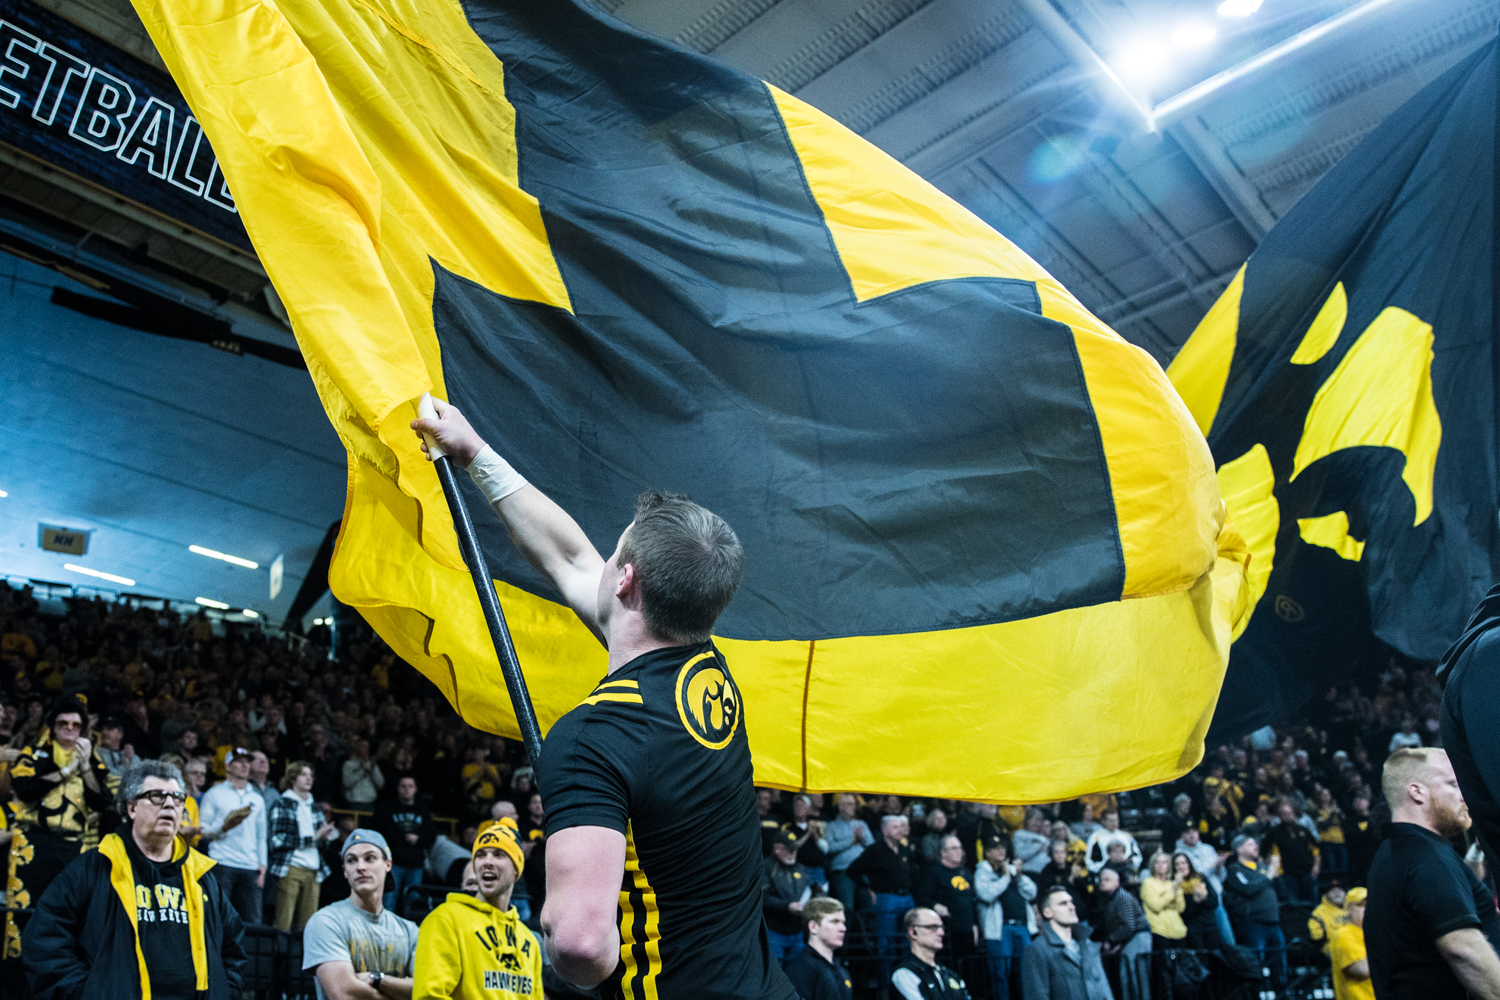 Iowa+spirit+teams+pump+up+the+crowd+during+a+men%27s+basketball+matchup+between+Ohio+State+and+Iowa+at+Carver-Hawkeye+Arena+on+Saturday%2C+January+12%2C+2019.+The+Hawkeyes+defeated+the+Buckeyes%2C+72-62.